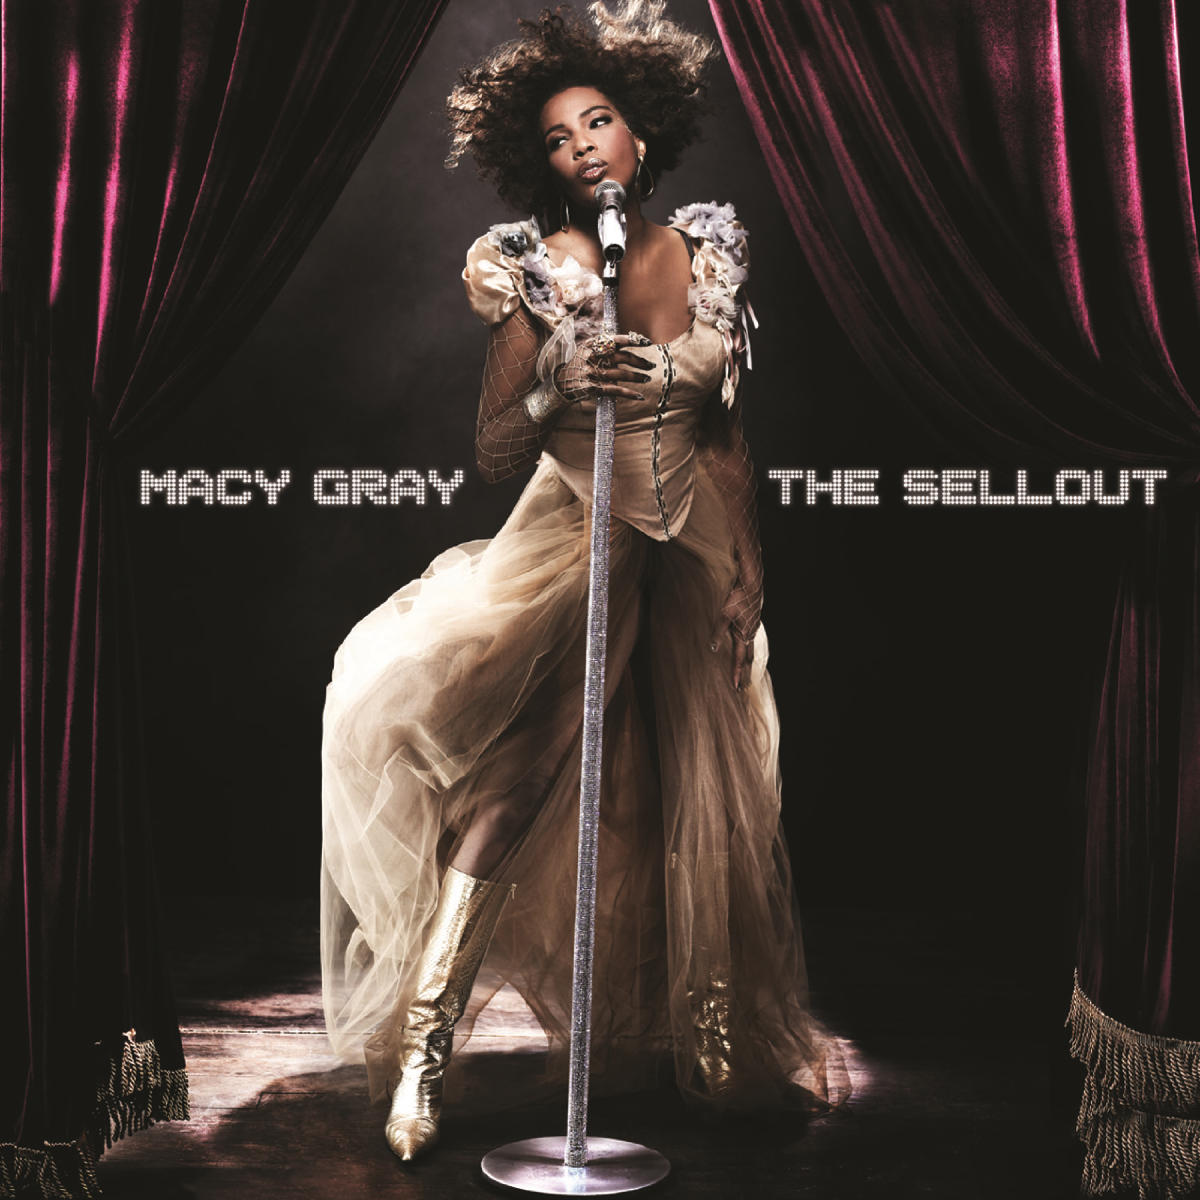 Let You Win by Macy Gray